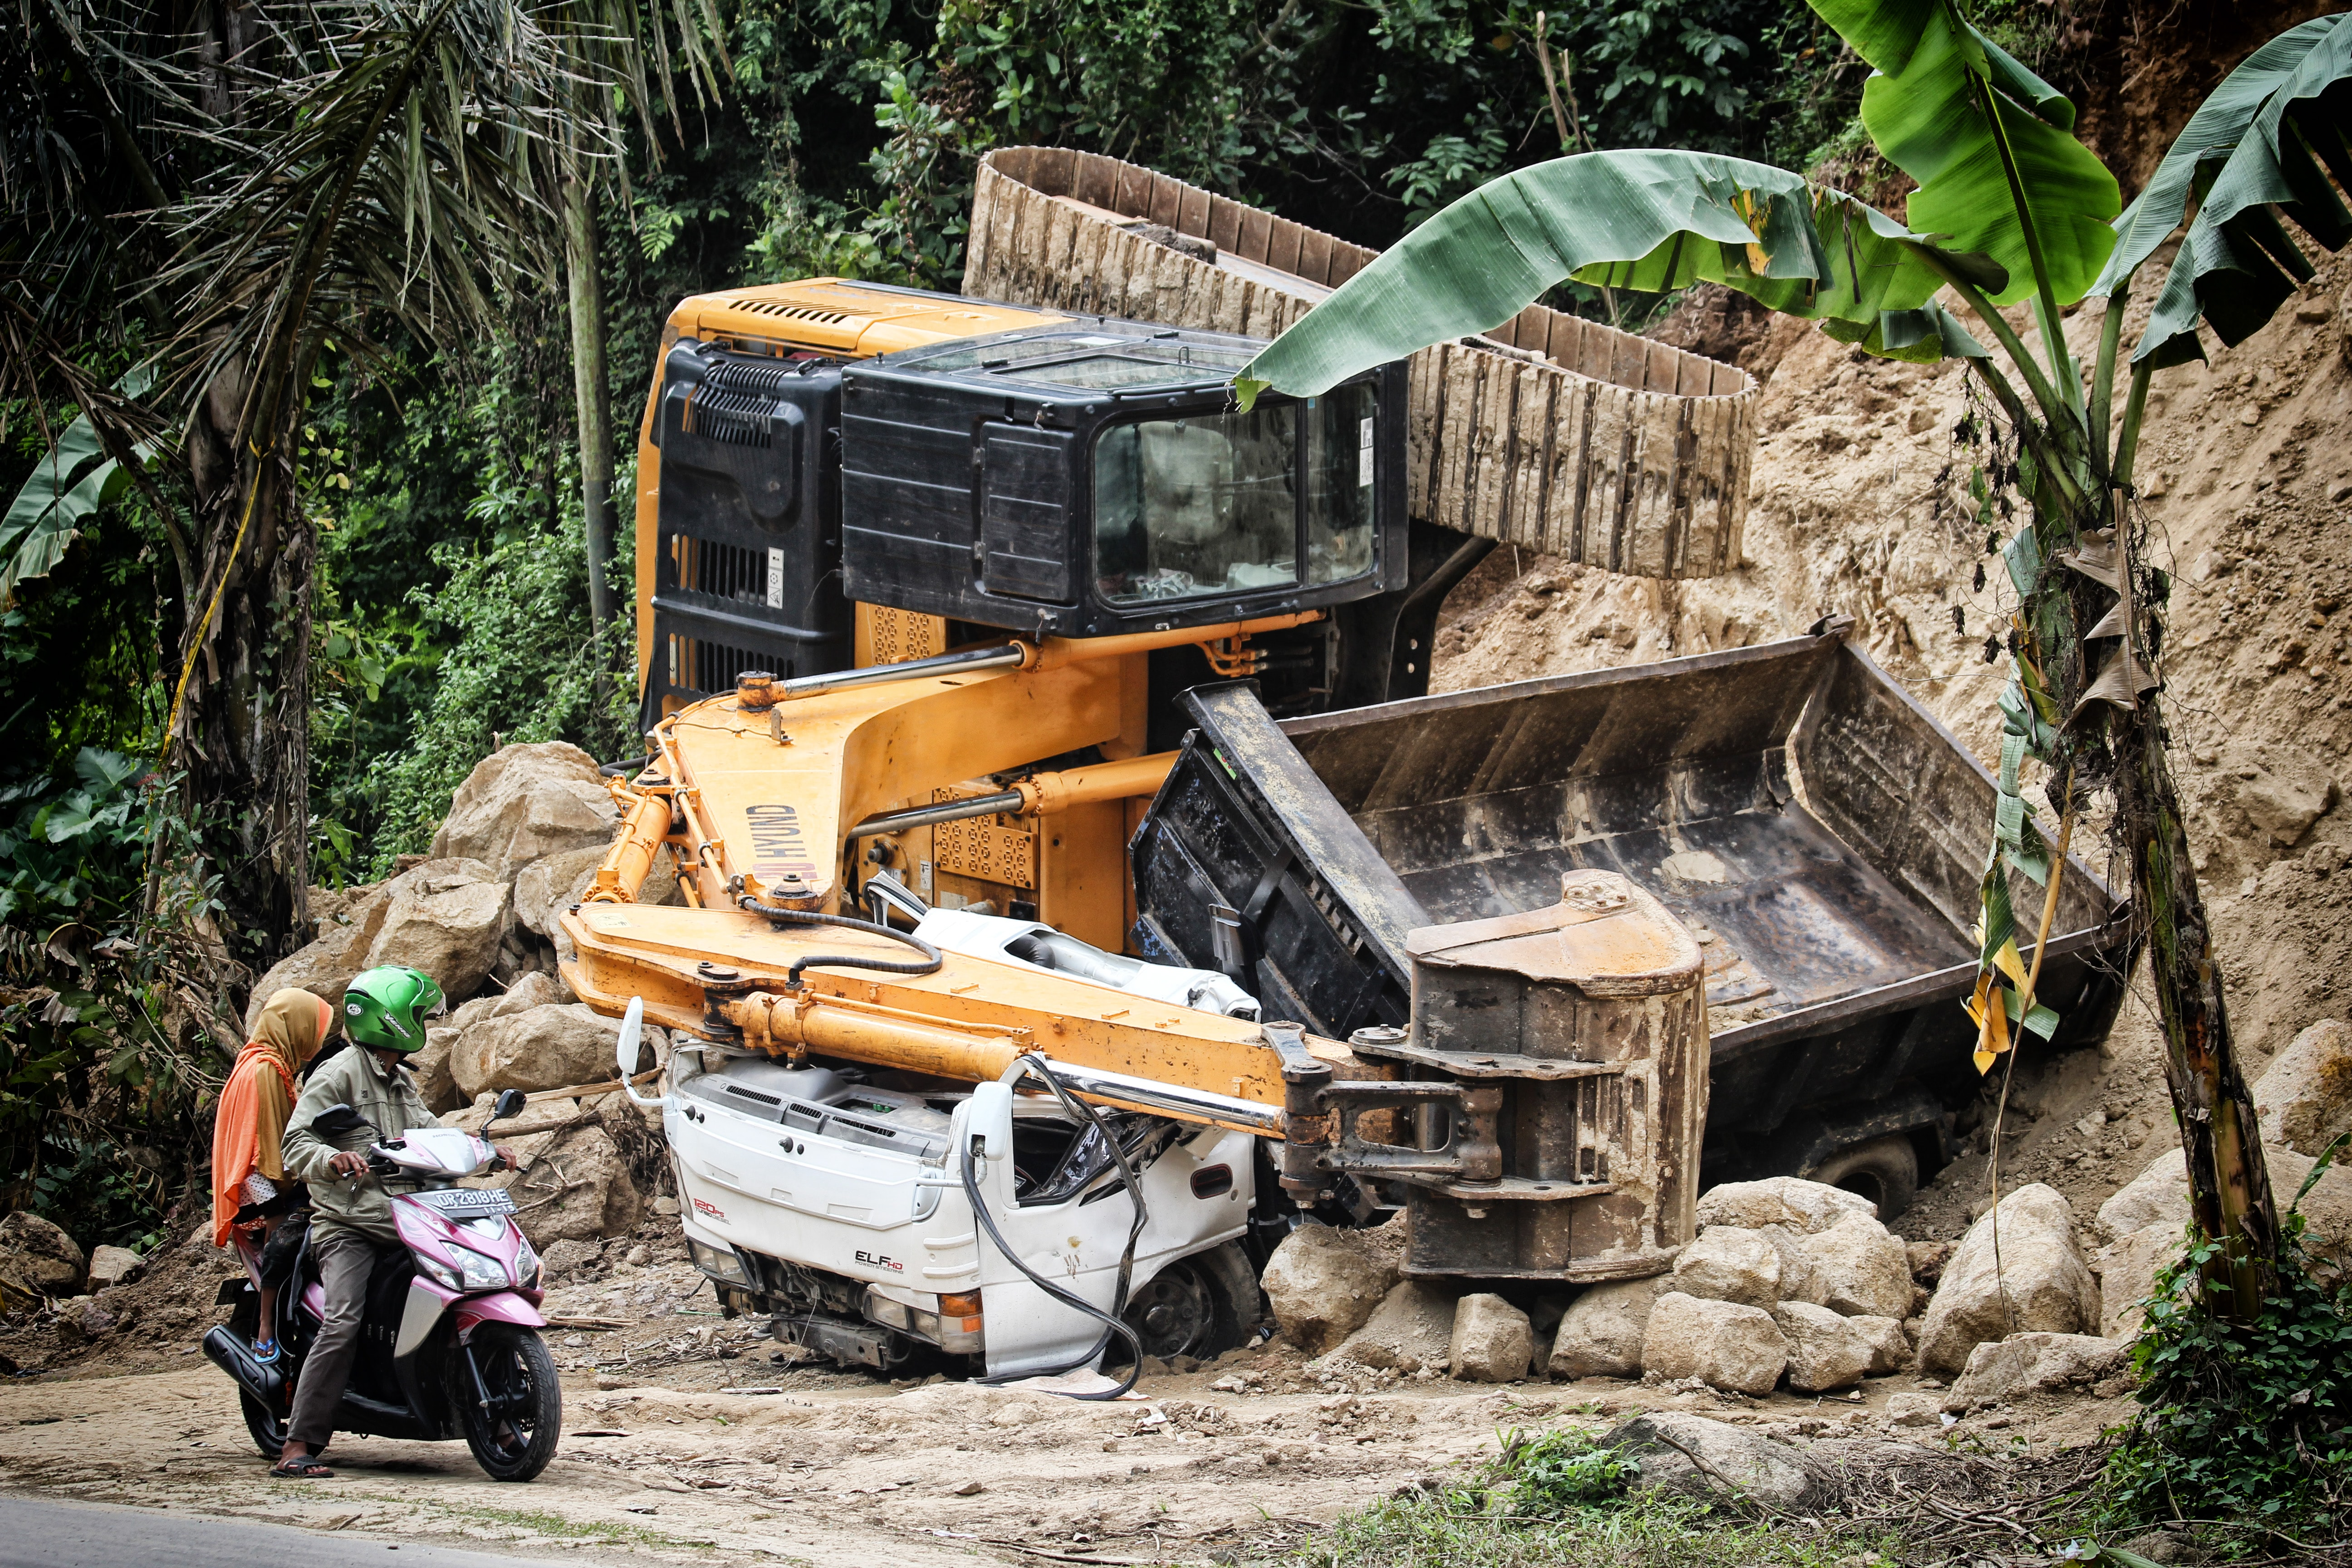 two people riding motorcycle looking at the excavator accident